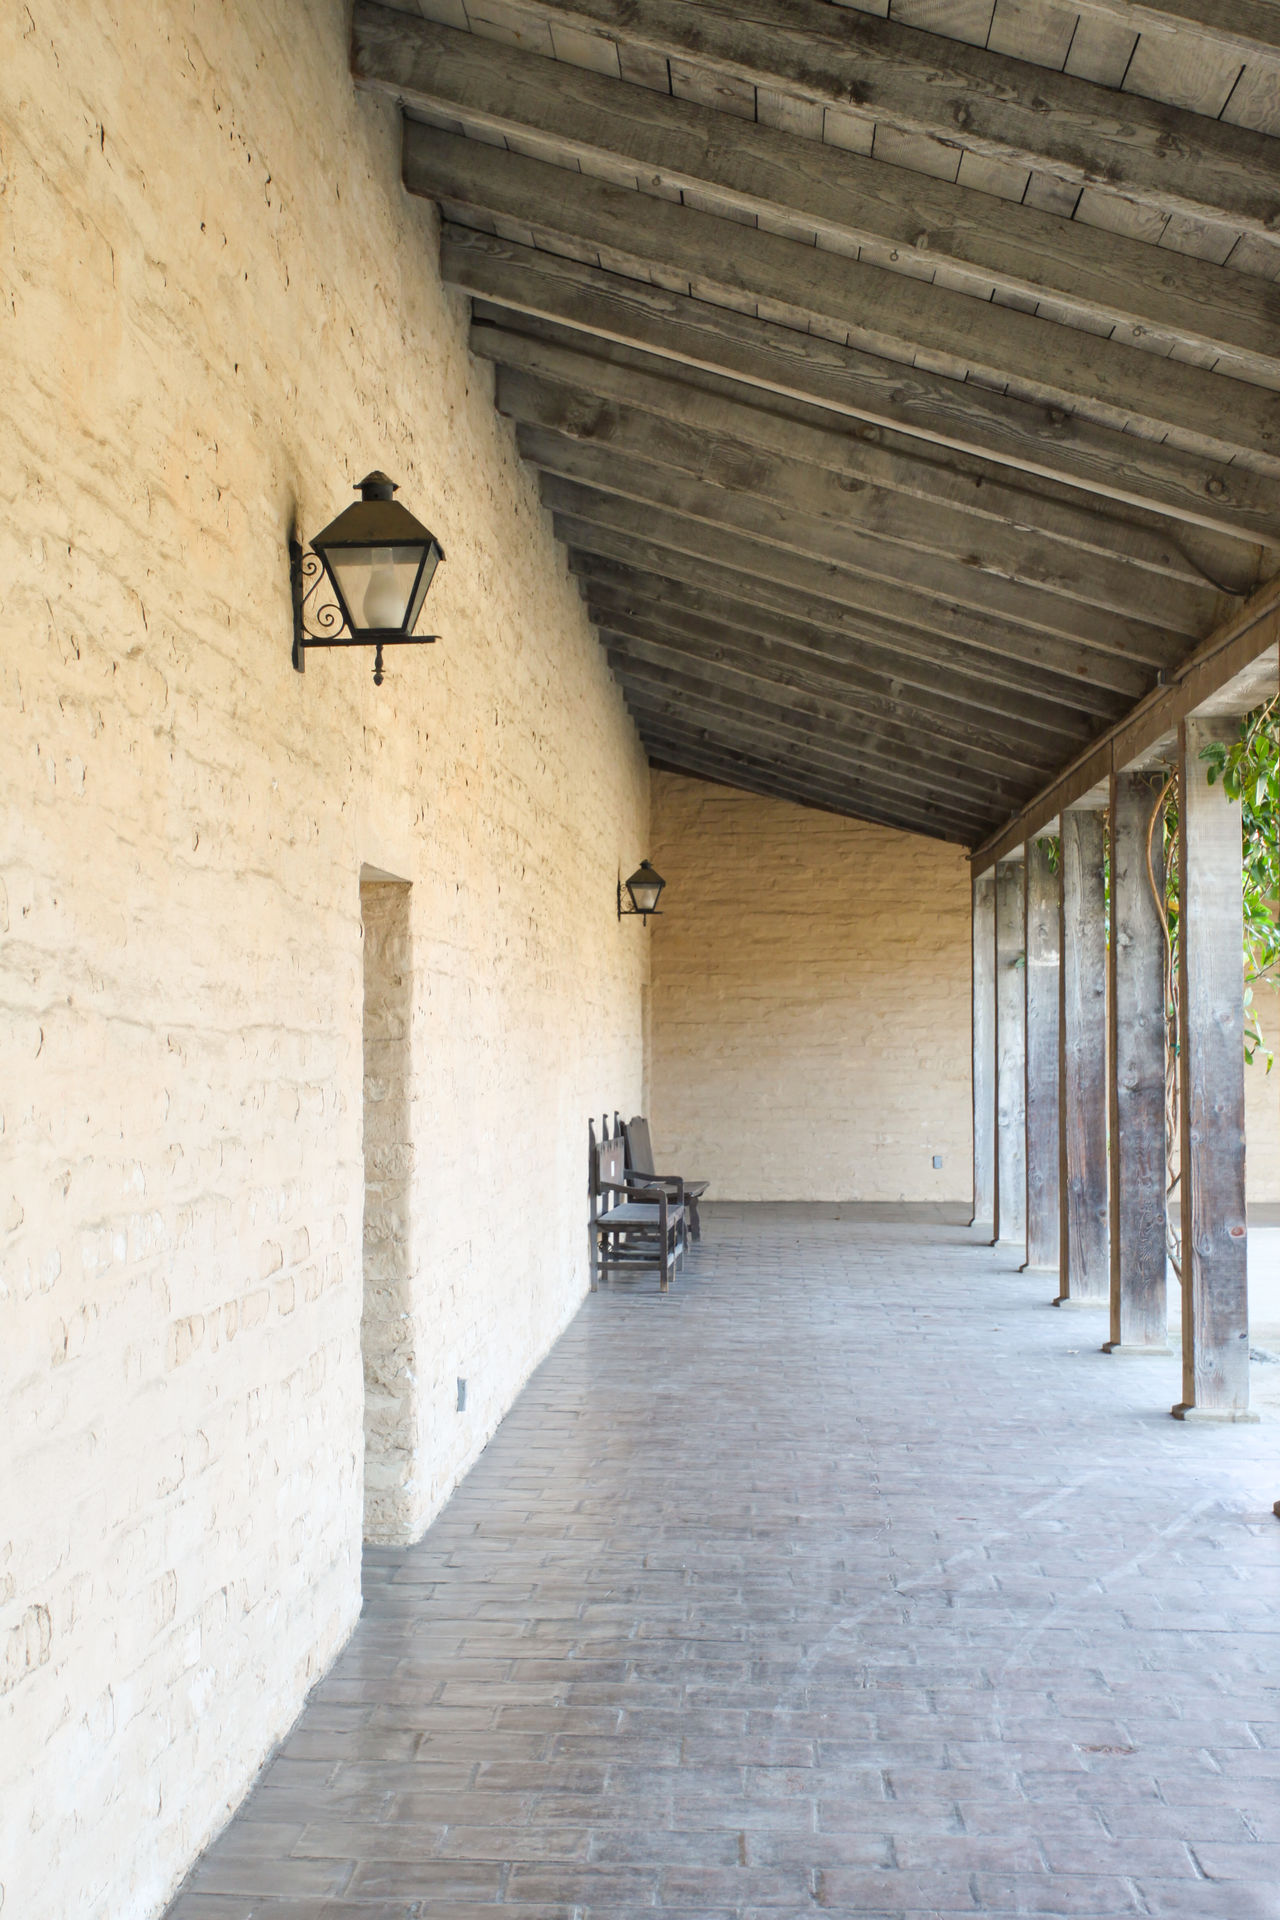 Old Outside Corridor Old outside corridor at a historical building in Santa Barbara. Aged Ancient Arcade Architectural Architecture Building Corridor Empty Entrance Exterior Historical Landmark Nobody Old Outdoor Outdoors Outside Passage Pavement Santa Barbara Sidewalk Stone Tourism Wall Walls